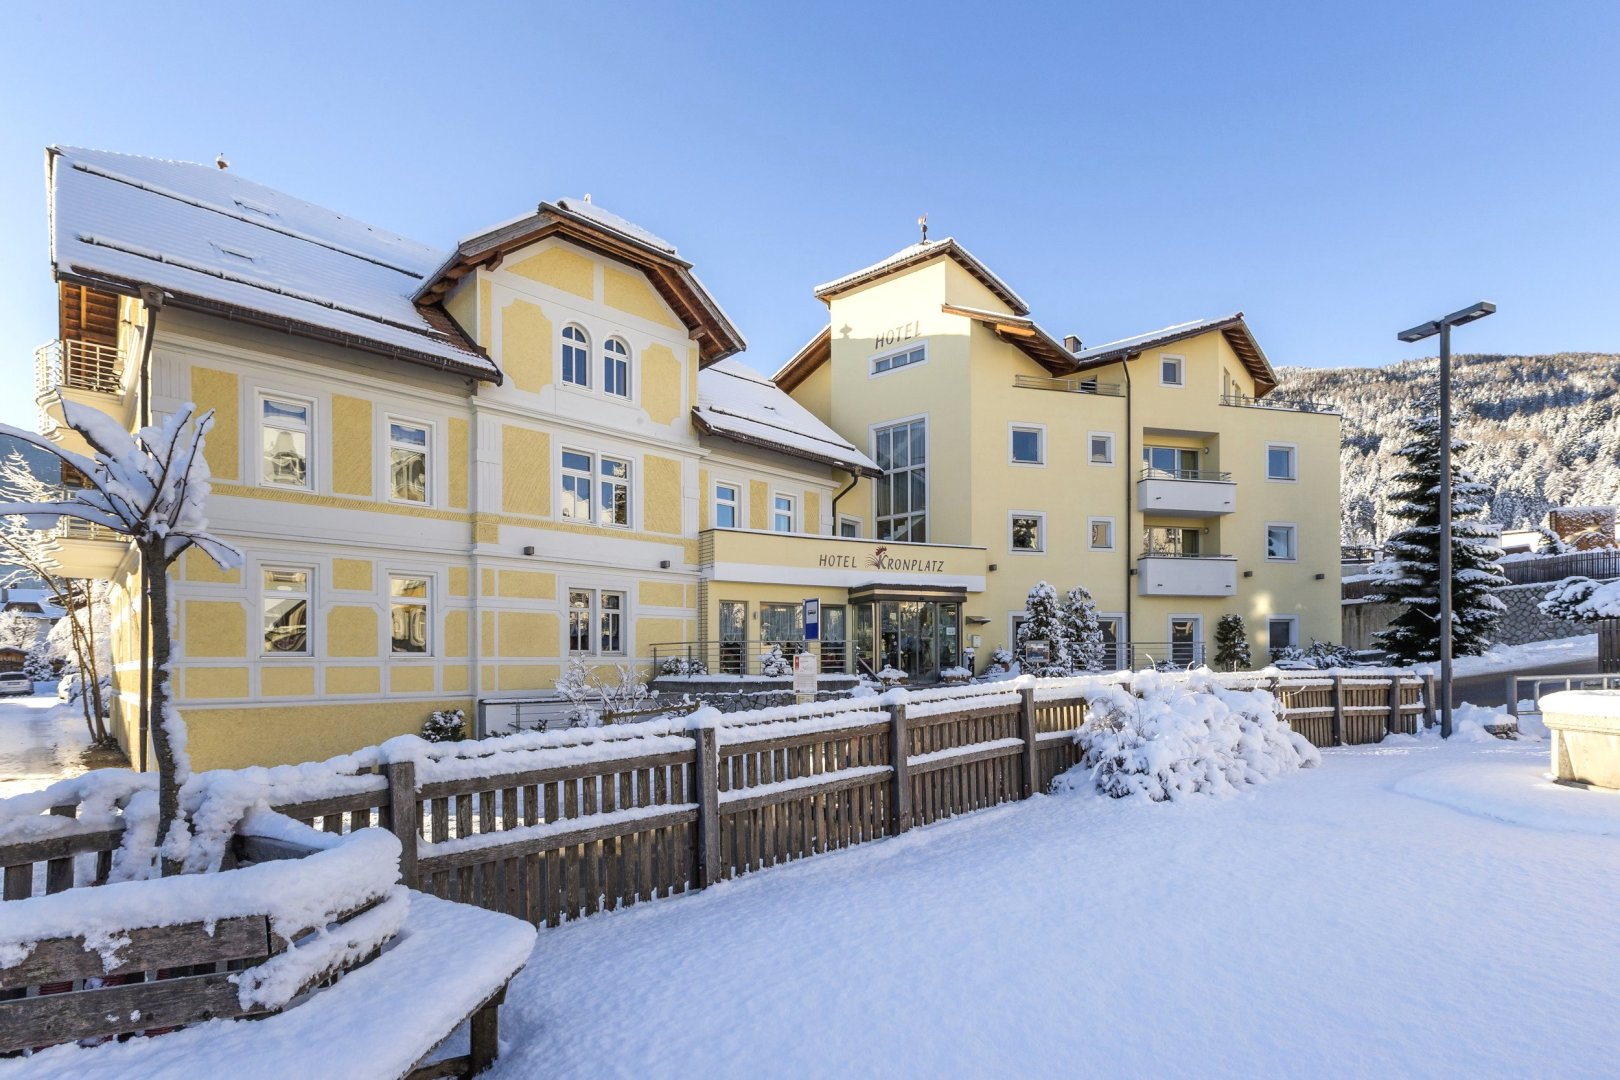 Hotel Kronplatz - mountain living